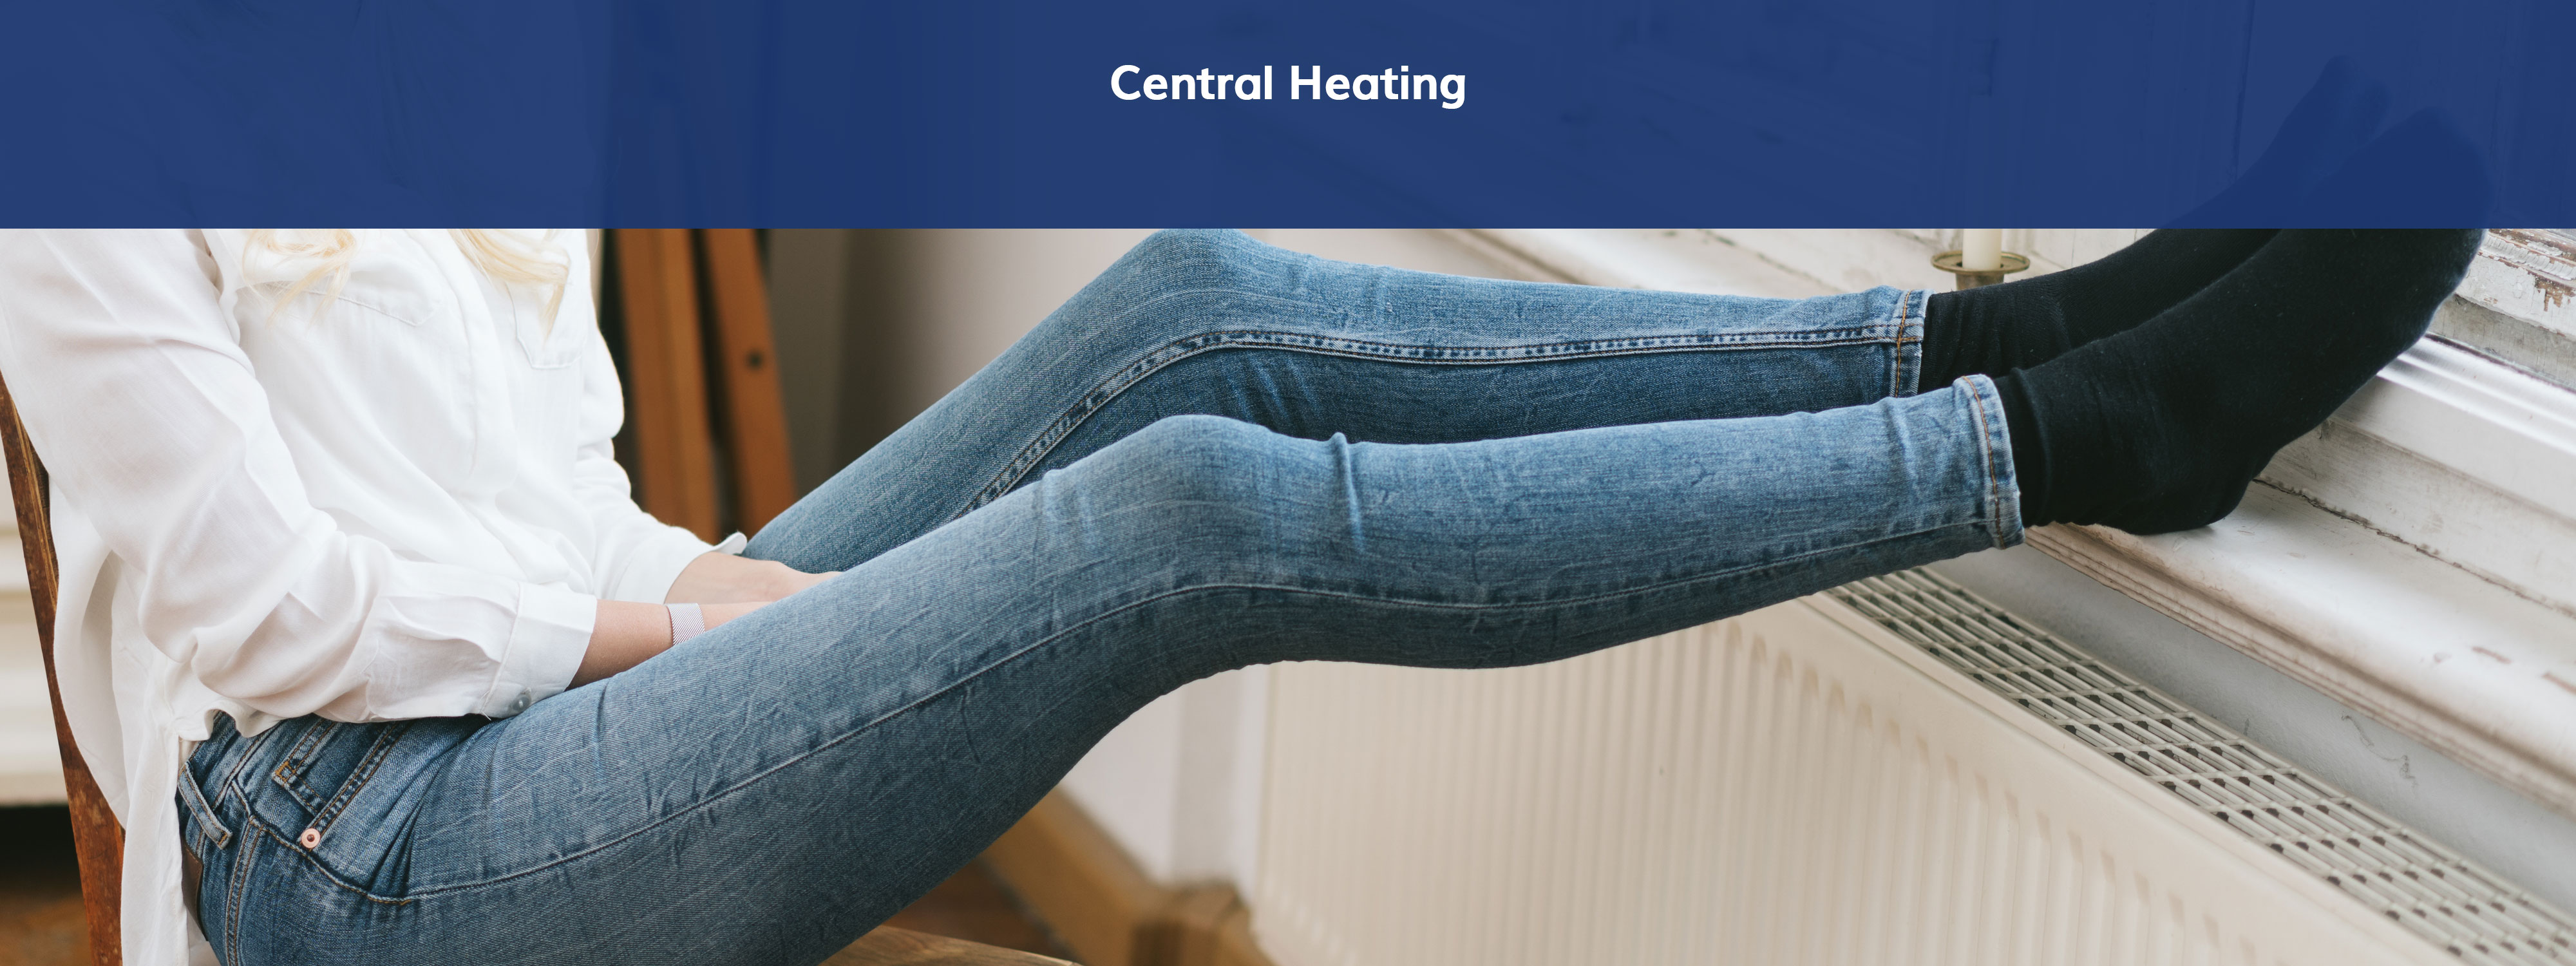 Central Heating Welling Central Heating Repairs Central Heating ...